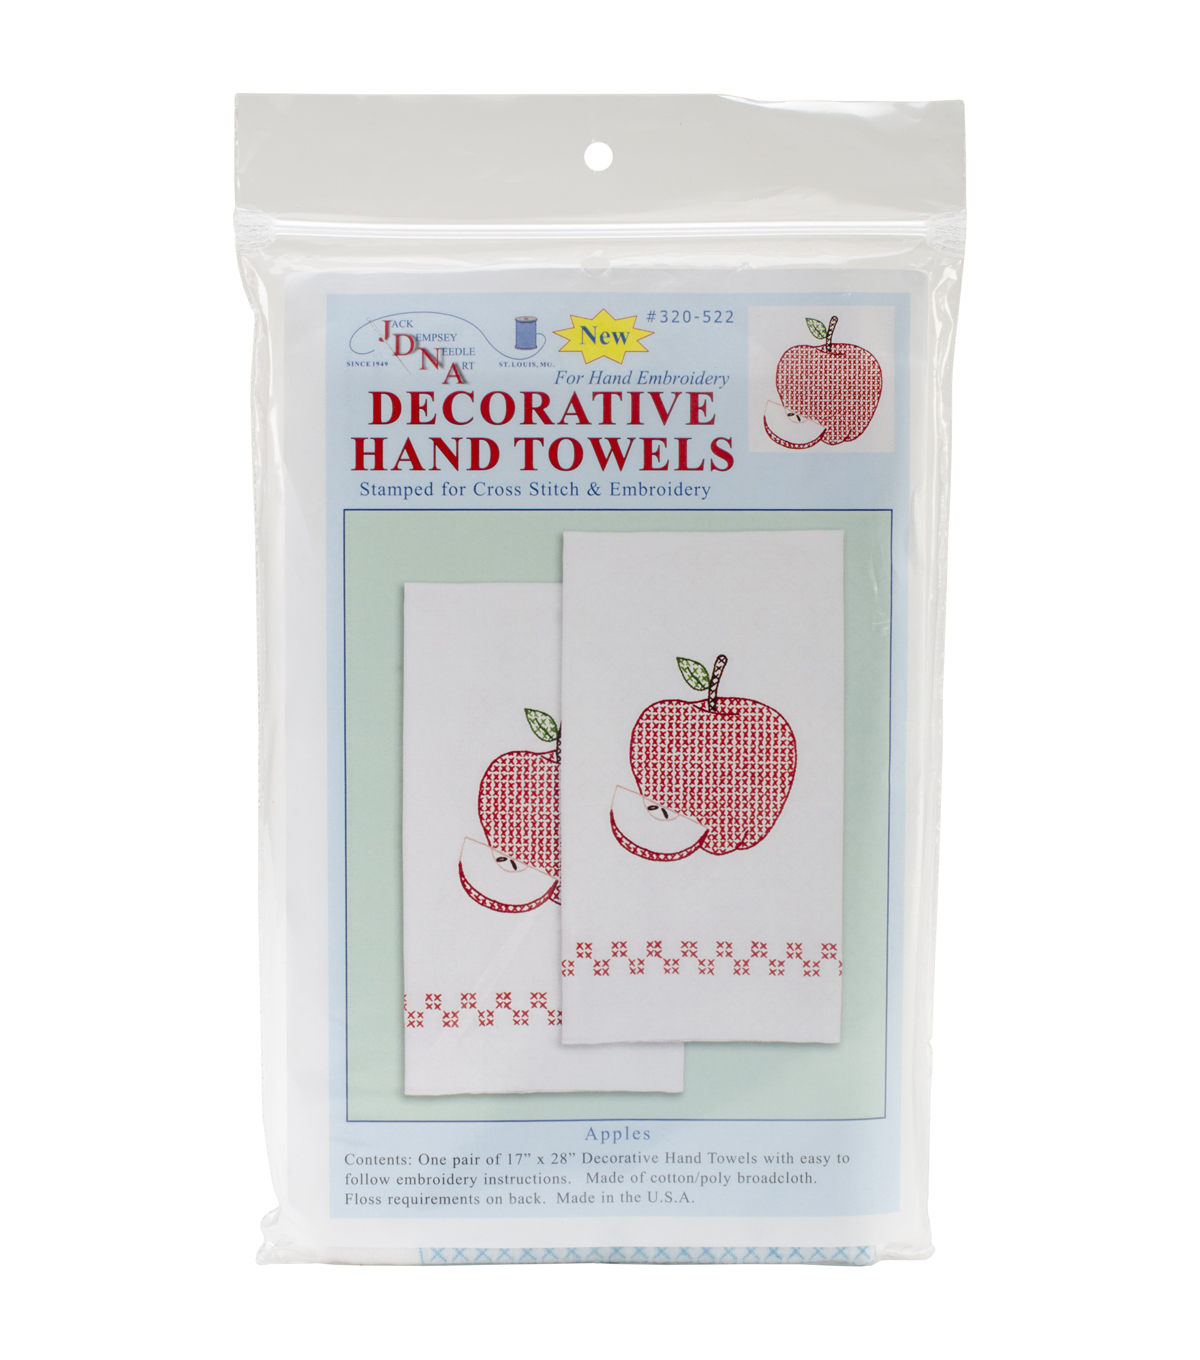 Jack Dempsey Stamped Decorative Hand Towel Apples White